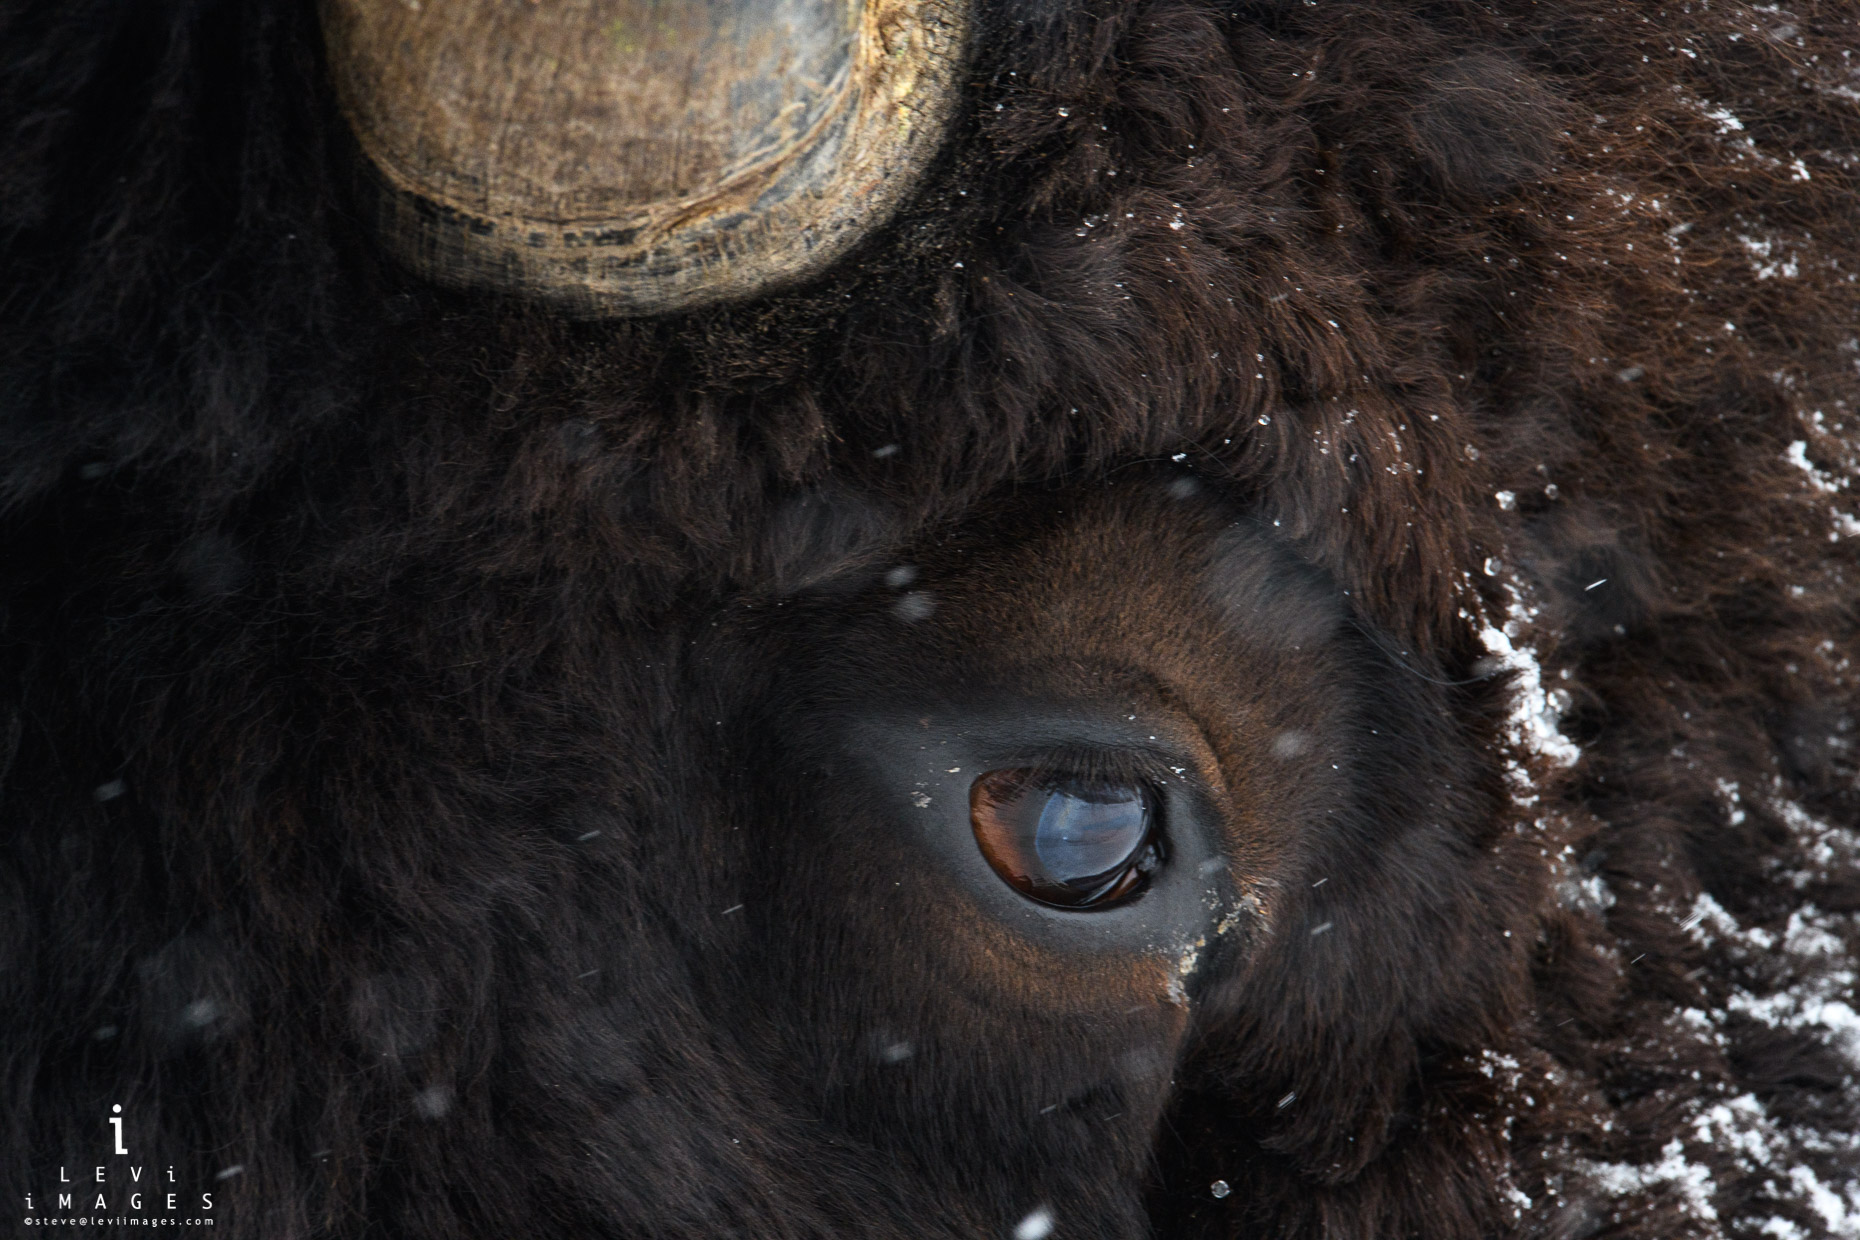 Bison (Bison bison) eye and horn close-up. Yellowstone National Park, Wyoming